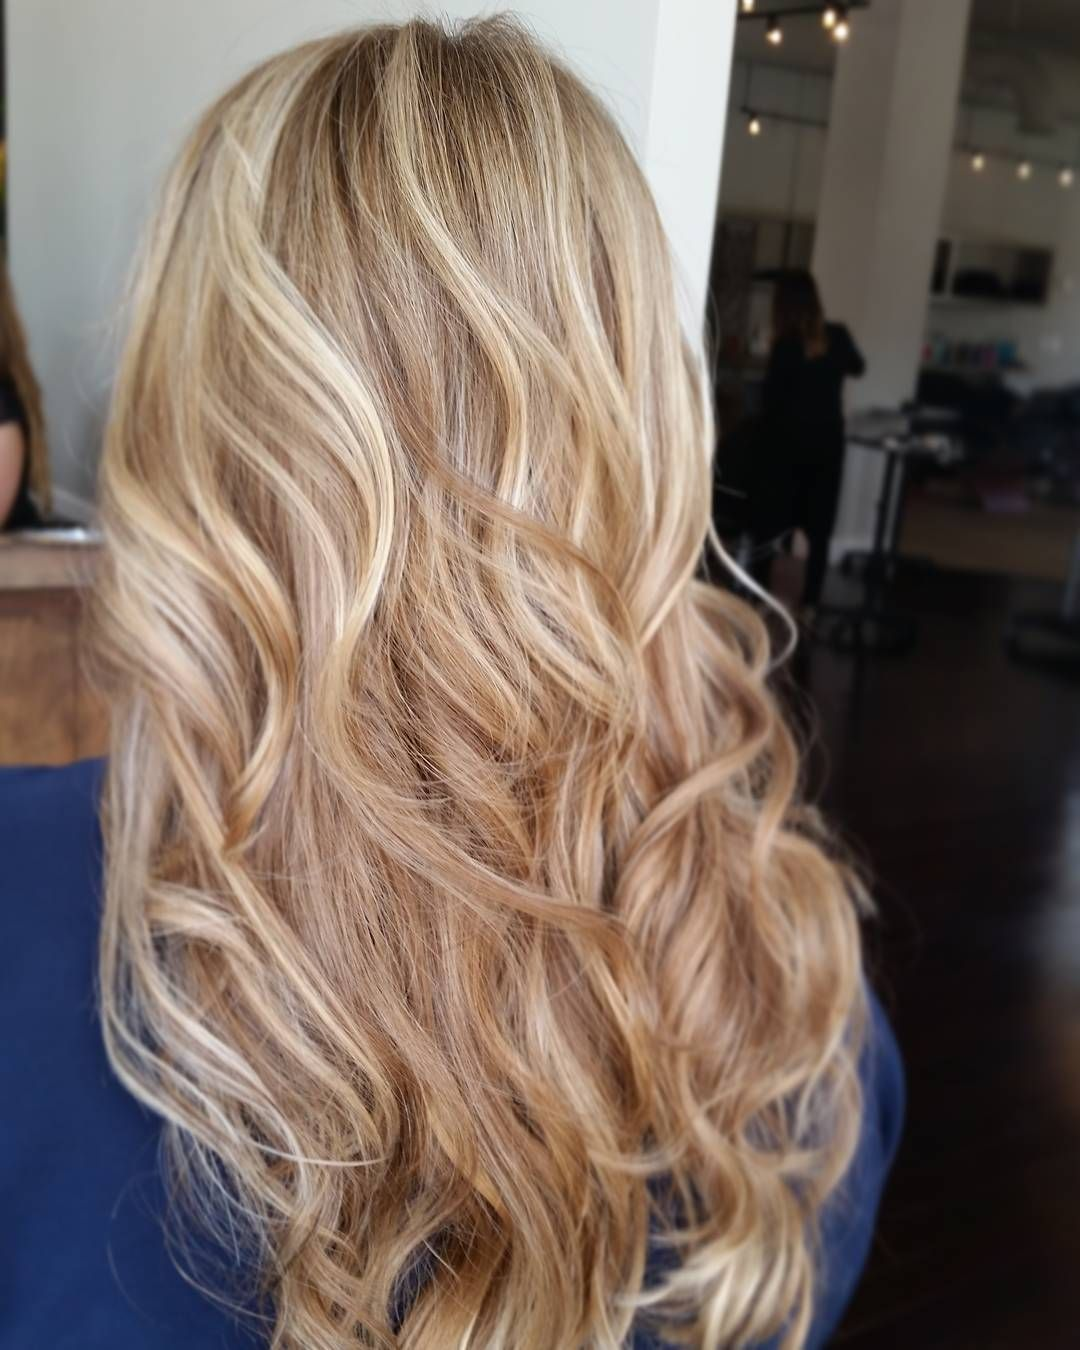 60 Alluring Designs For Blonde Hair With Lowlights And Highlights